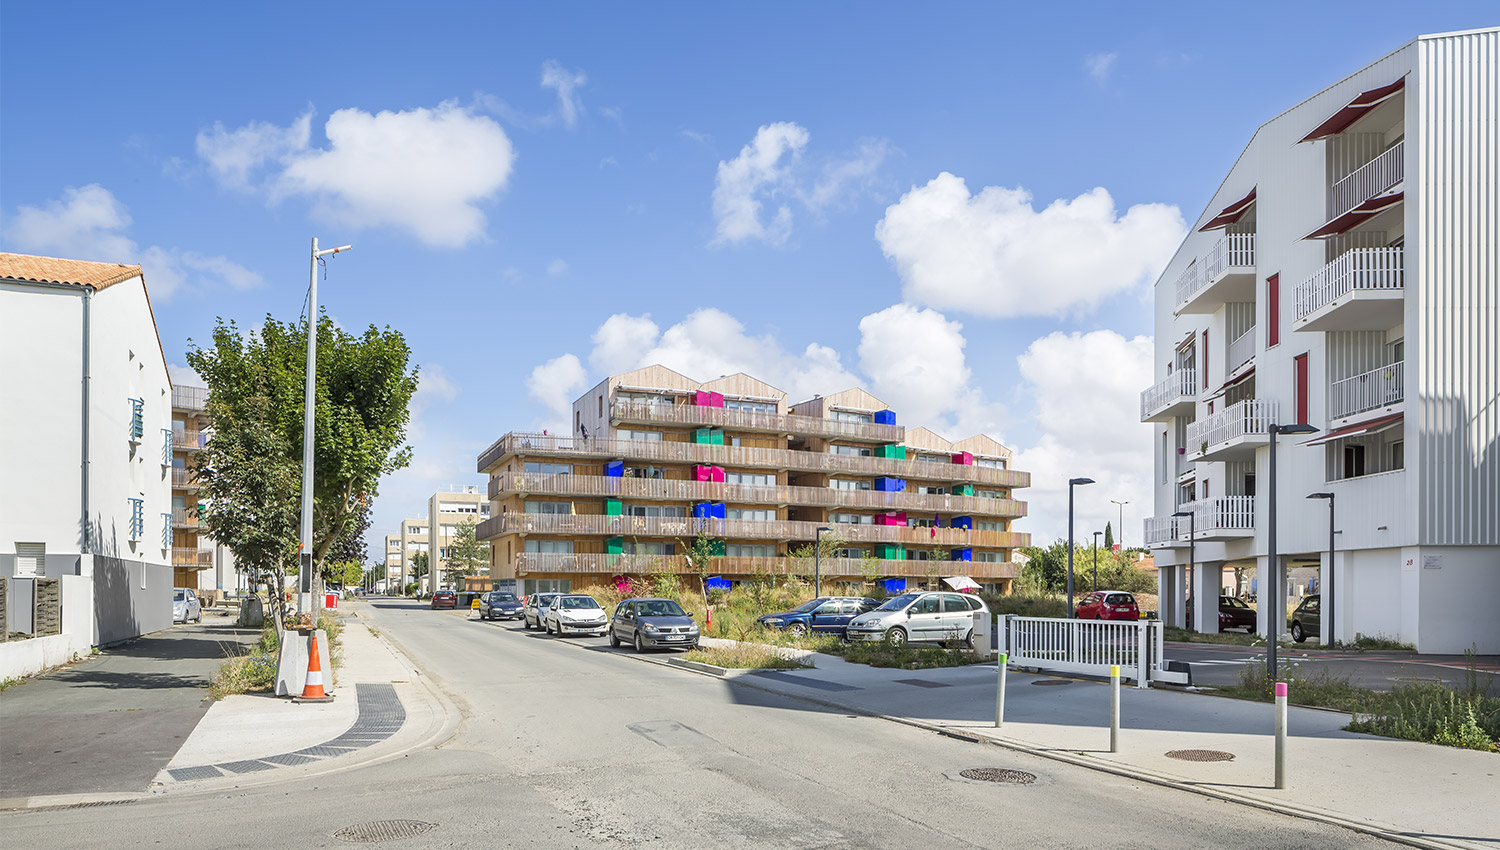 PierreLoti-11-collectif-logement-alterlab.jpg